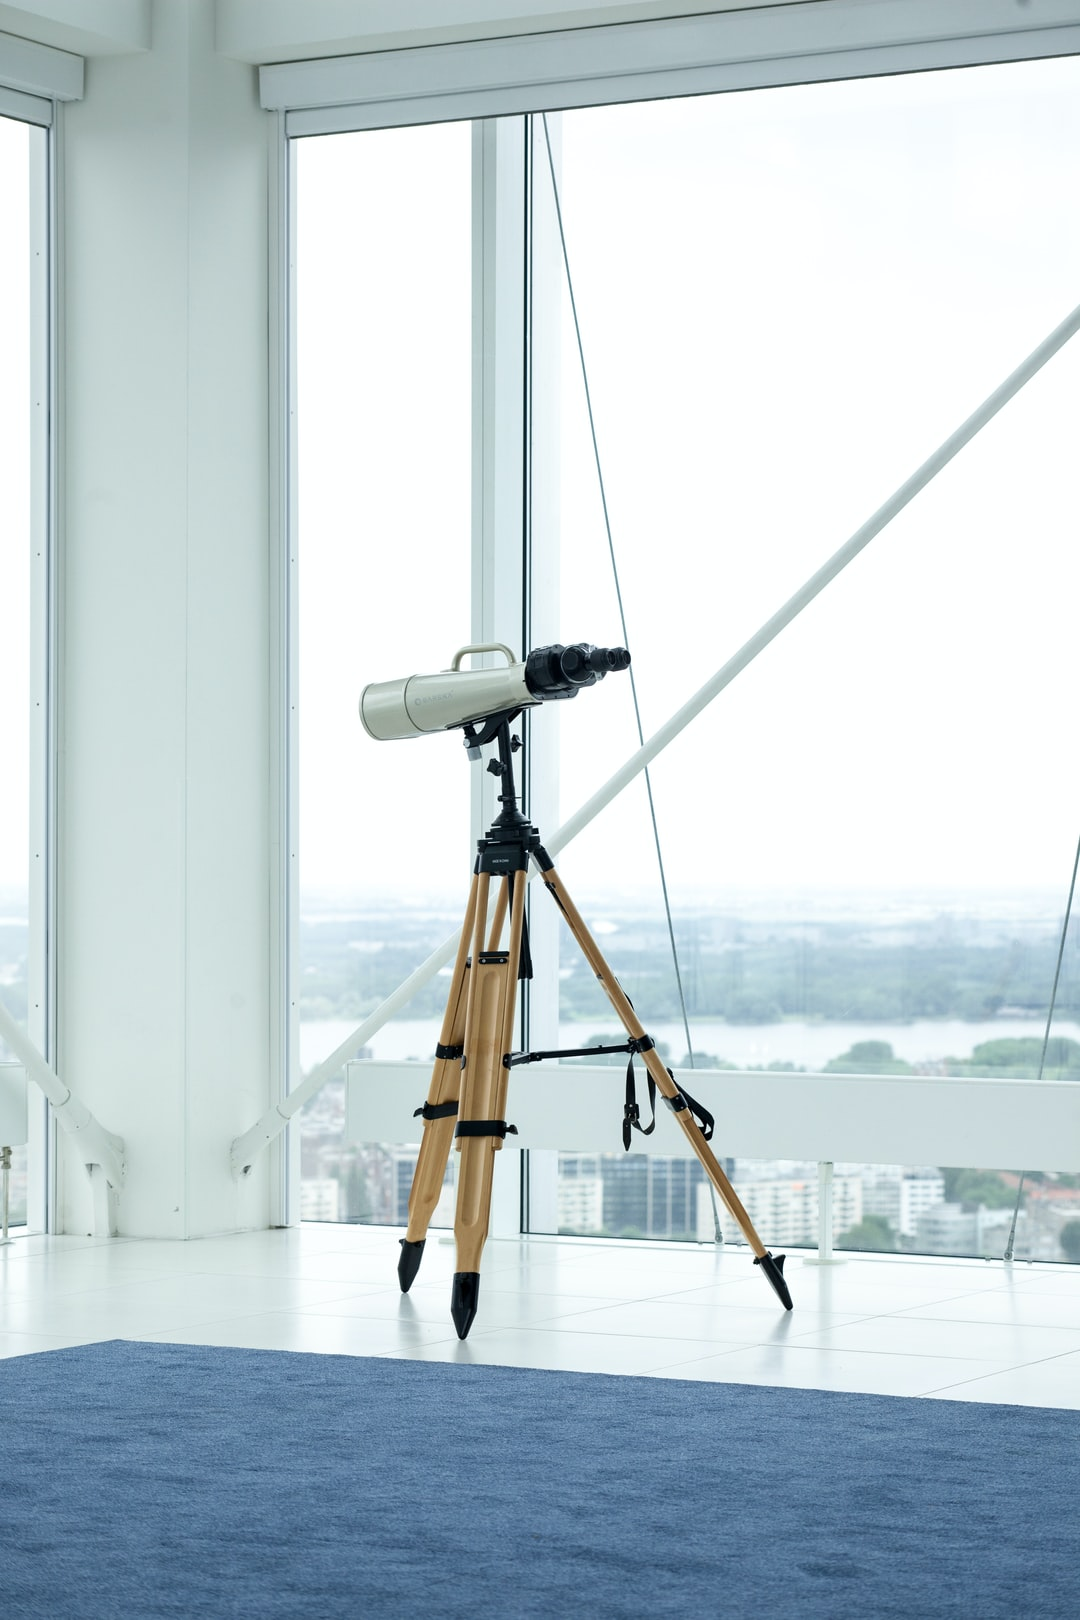 This binoculars on tripod can be found on the top floor of the Maas building Rotterdam. The floor is used for events and meetings. The photo was taken during architecture day 2015.